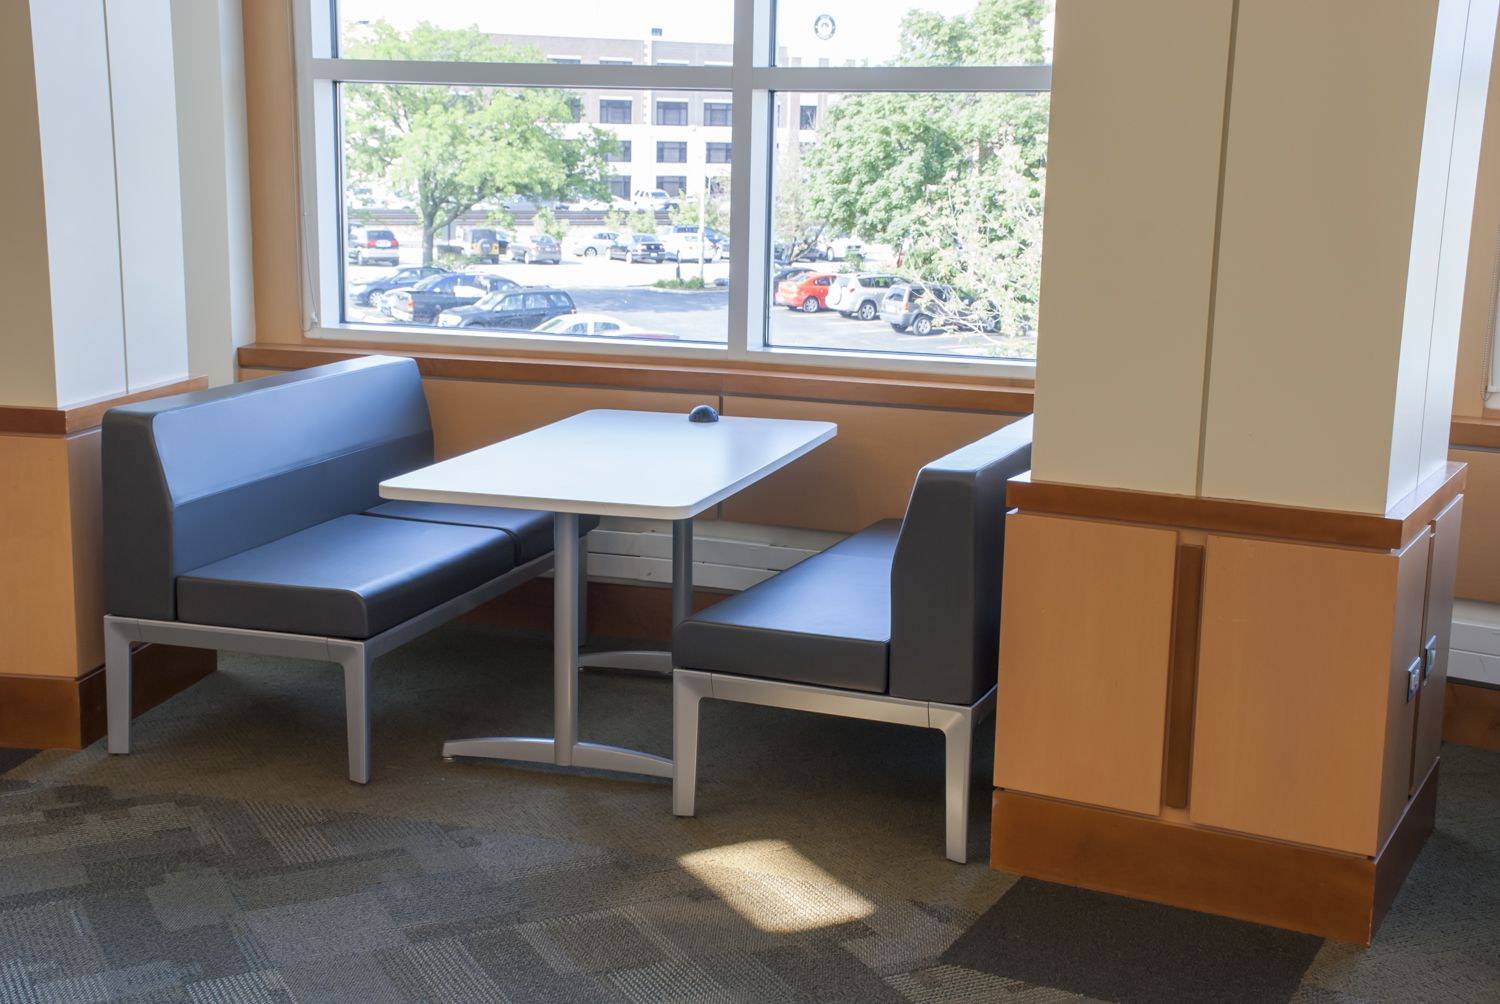 LFI Installation Of Cafe Style Seating